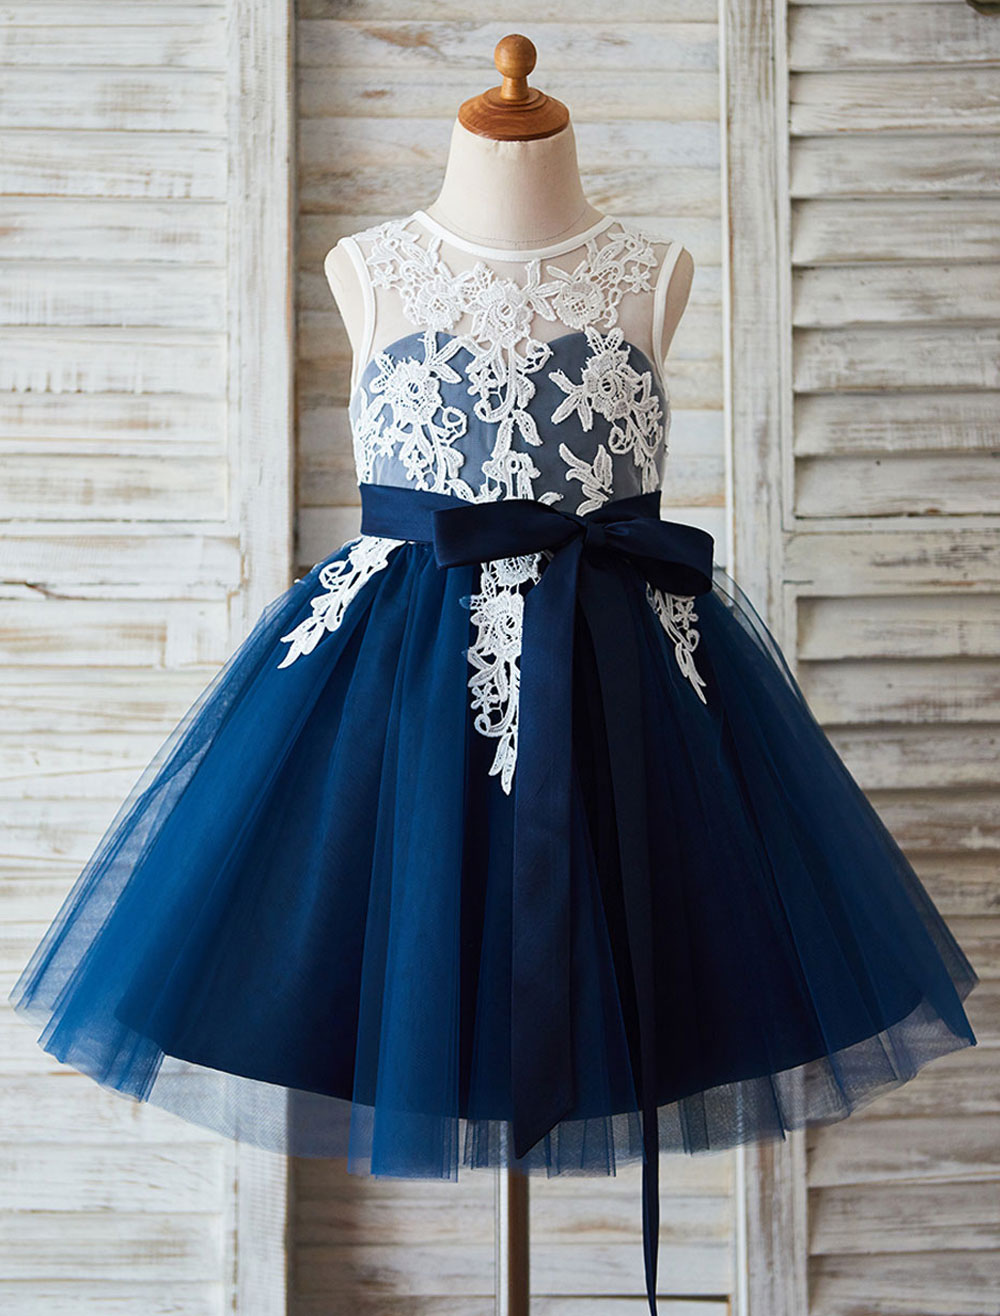 Buy Lace Flower Girl Dress Tutu Dress Illusion Neckline Ball Gown Knee-Length Toddler's Pageant Dress for $78.84 in Milanoo store